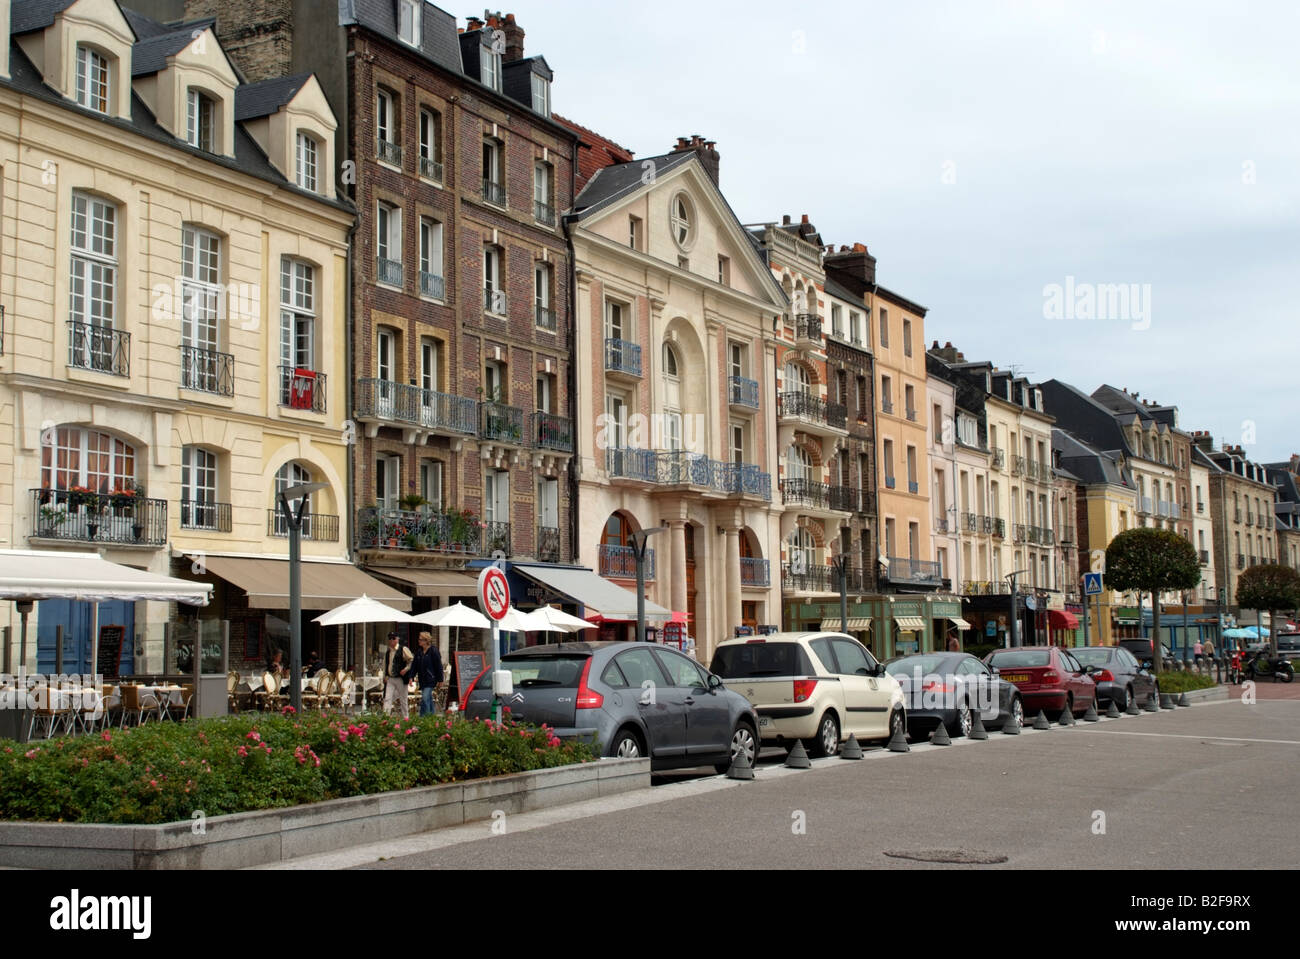 Seafront properties in the coastal town of Dieppe northern France Europe - Stock Image